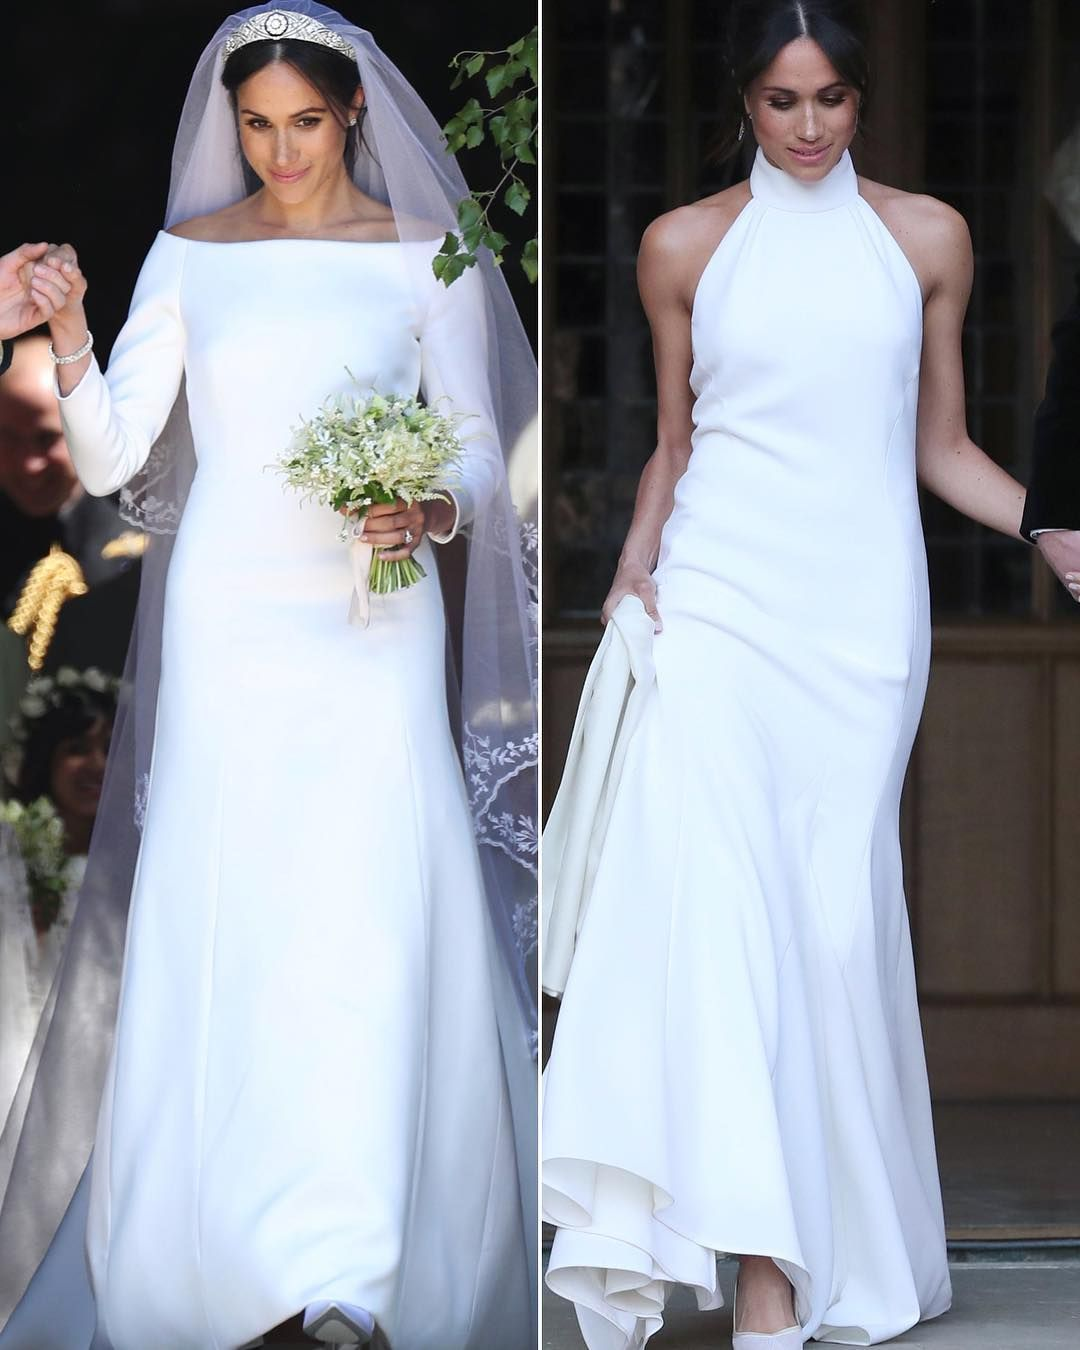 Reception dresses for royal wedding  Which gown of Meghan Markleus was your fave The ceremony by